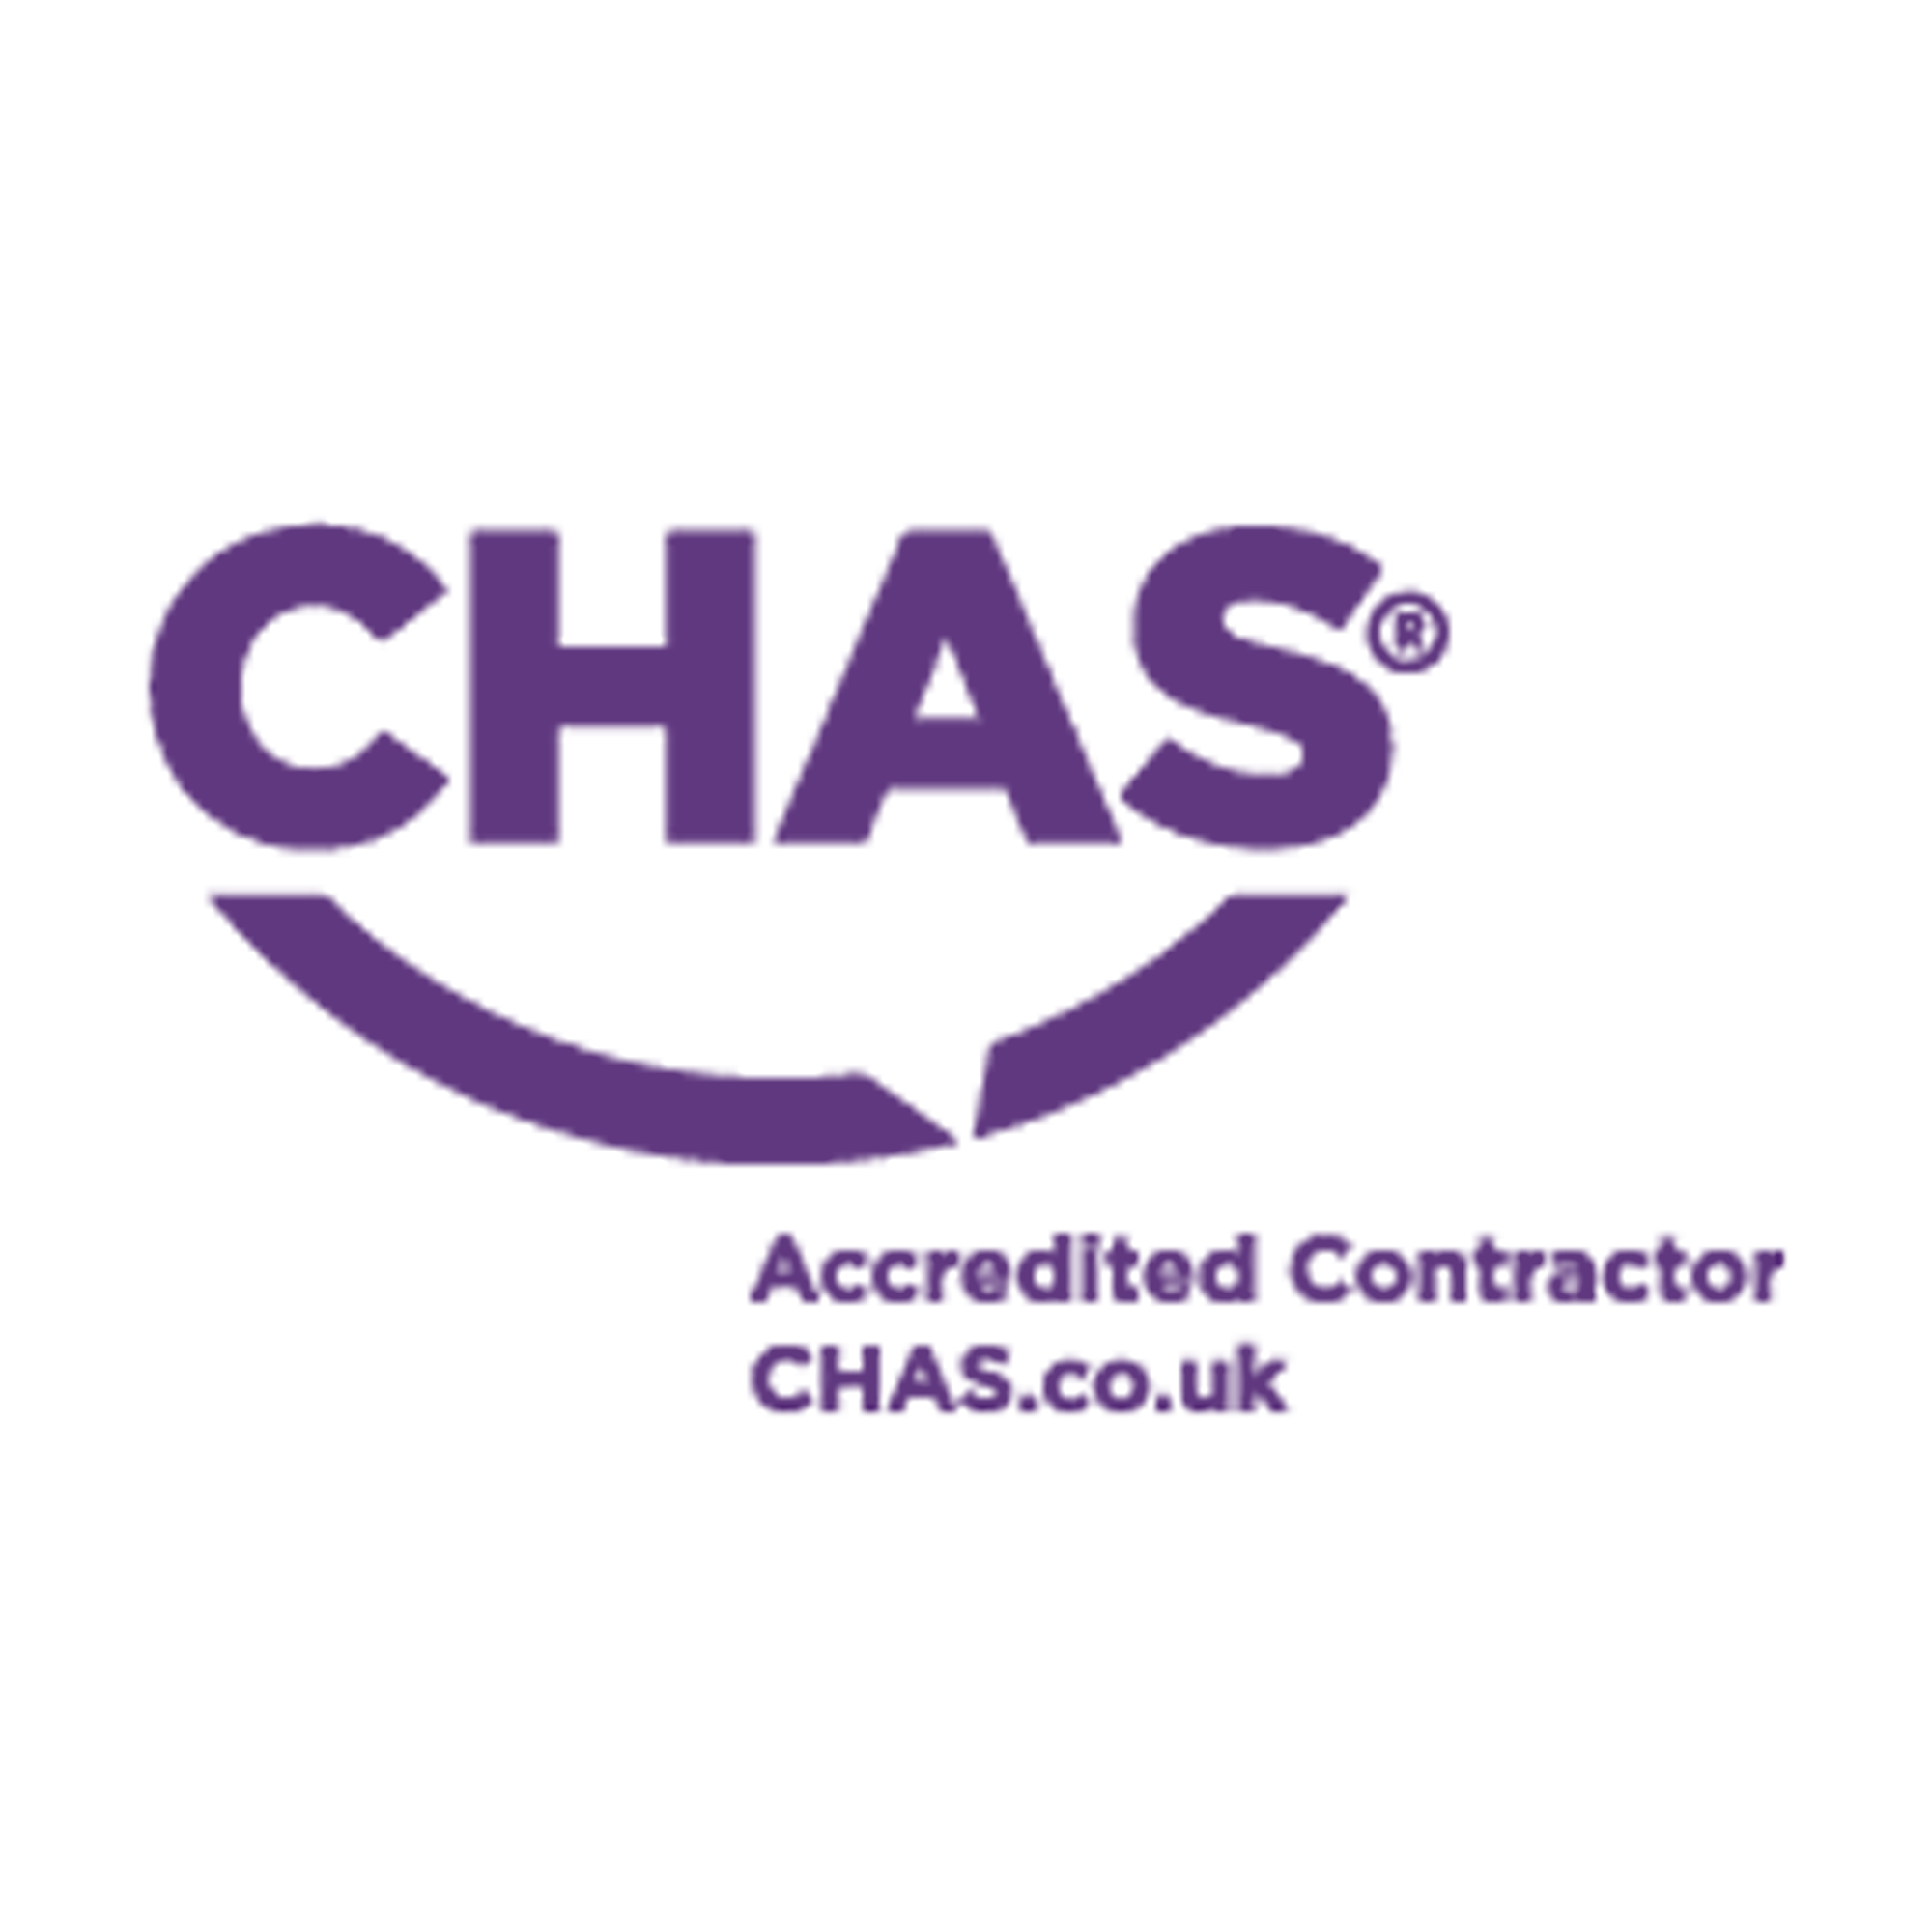 https://www.mwsweepers.co.uk/wp-content/uploads/2019/05/CHAS.png